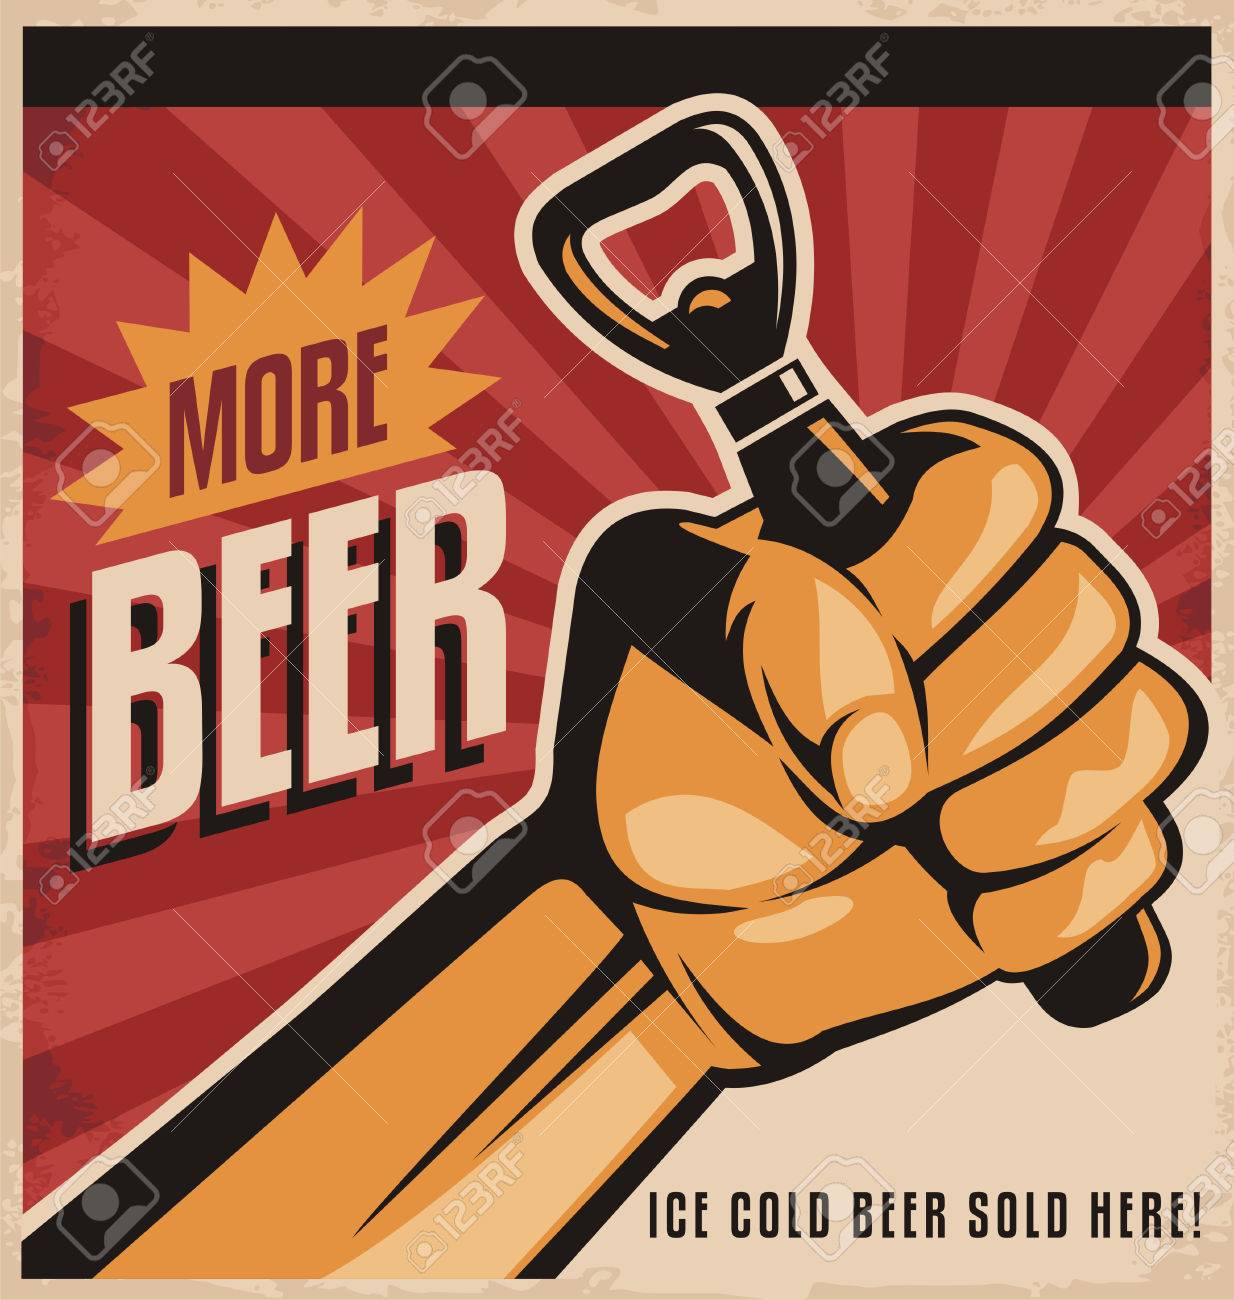 Beer Retro Poster Design With Revolution Fist Stock Vector